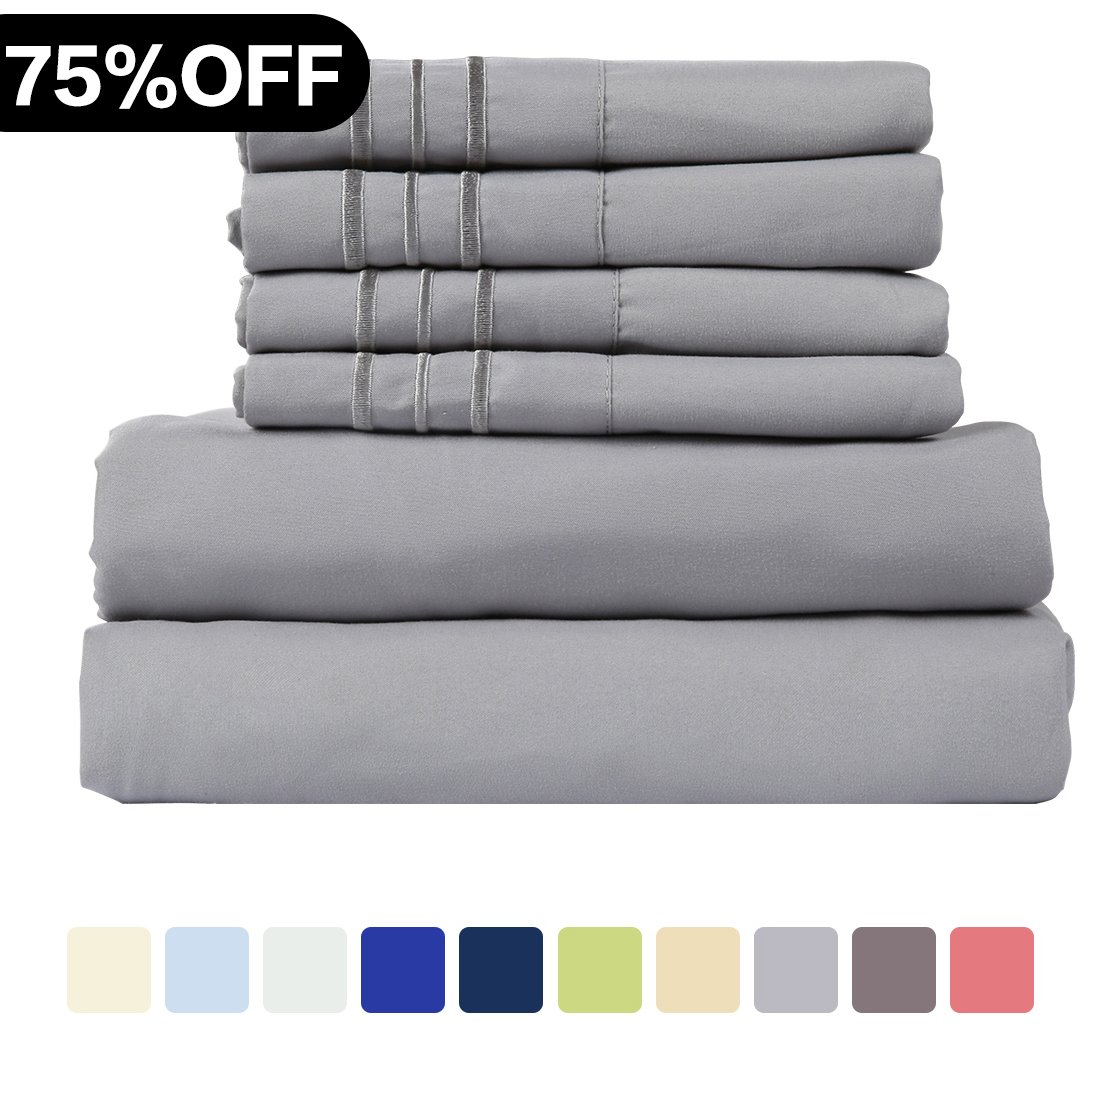 WARM HARBOR Microfiber Sheet Set Super Soft 1800 Thread Count Deep Pocket Bed Sheets Wrinkle, Fade, Stain Resistant Hypoallergenic -4 Piece(Grey, Twin XL)